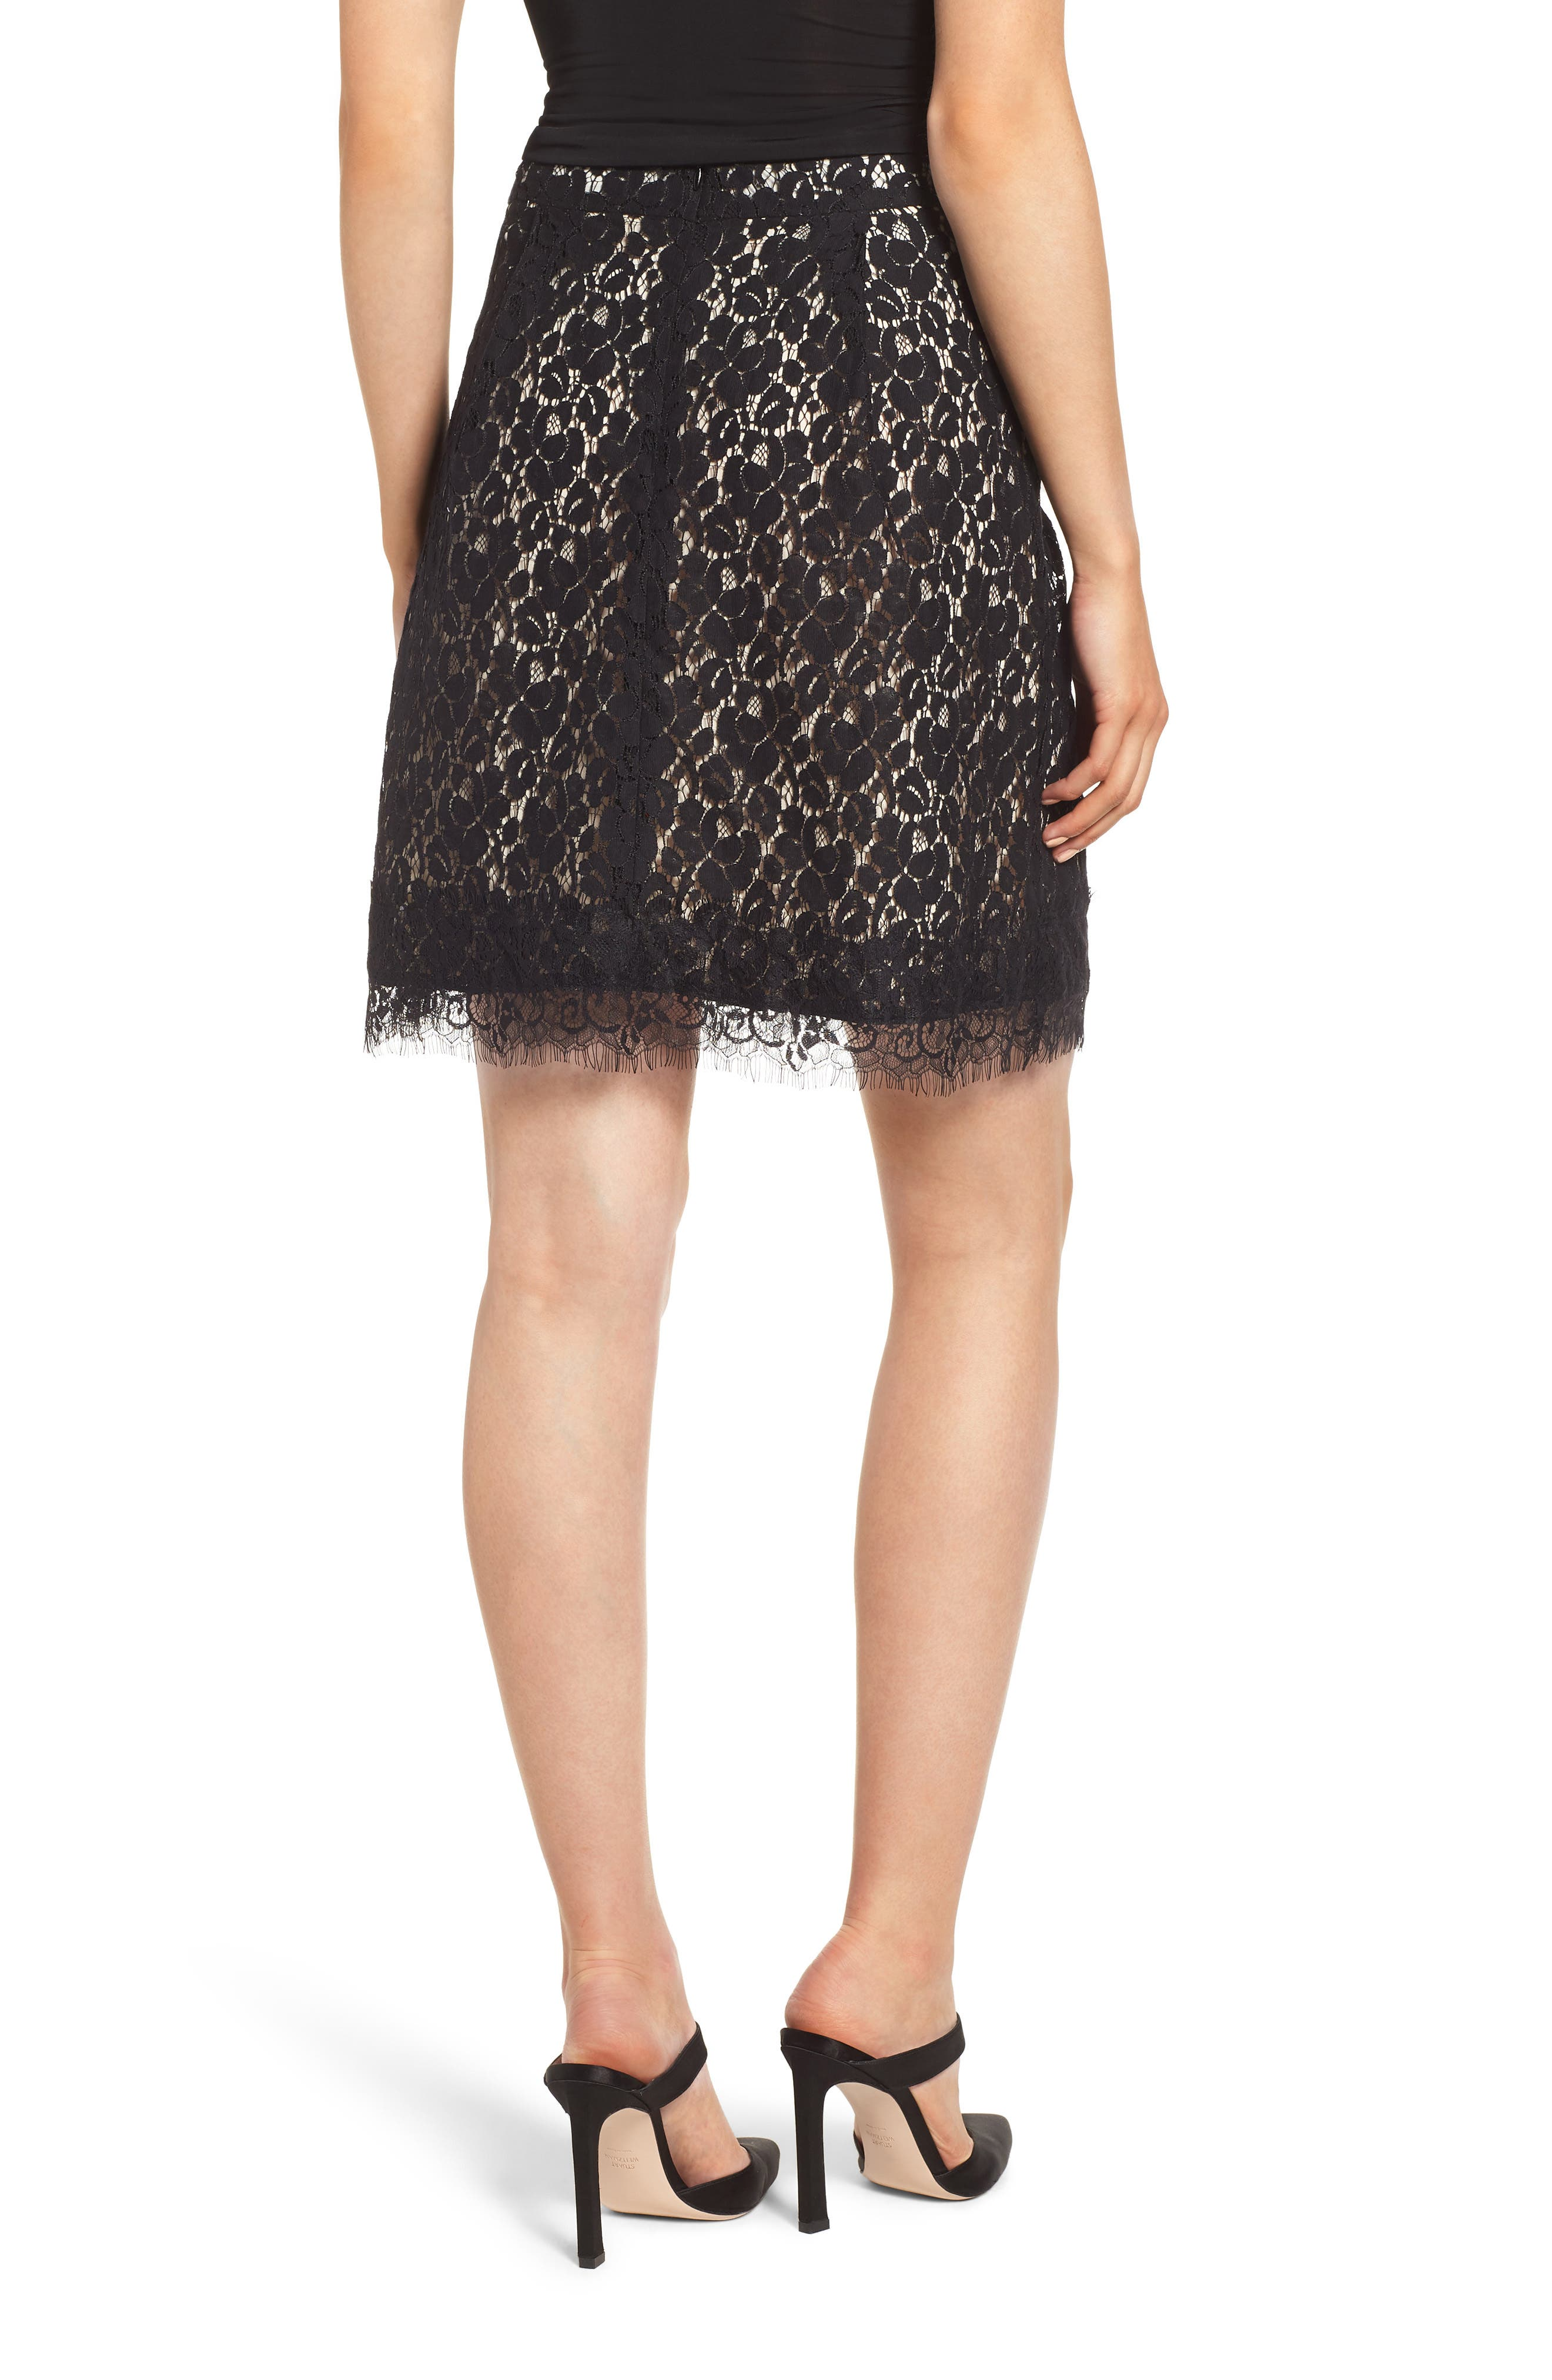 GIBSON,                             x Glam Squad Lace Skirt,                             Alternate thumbnail 3, color,                             017